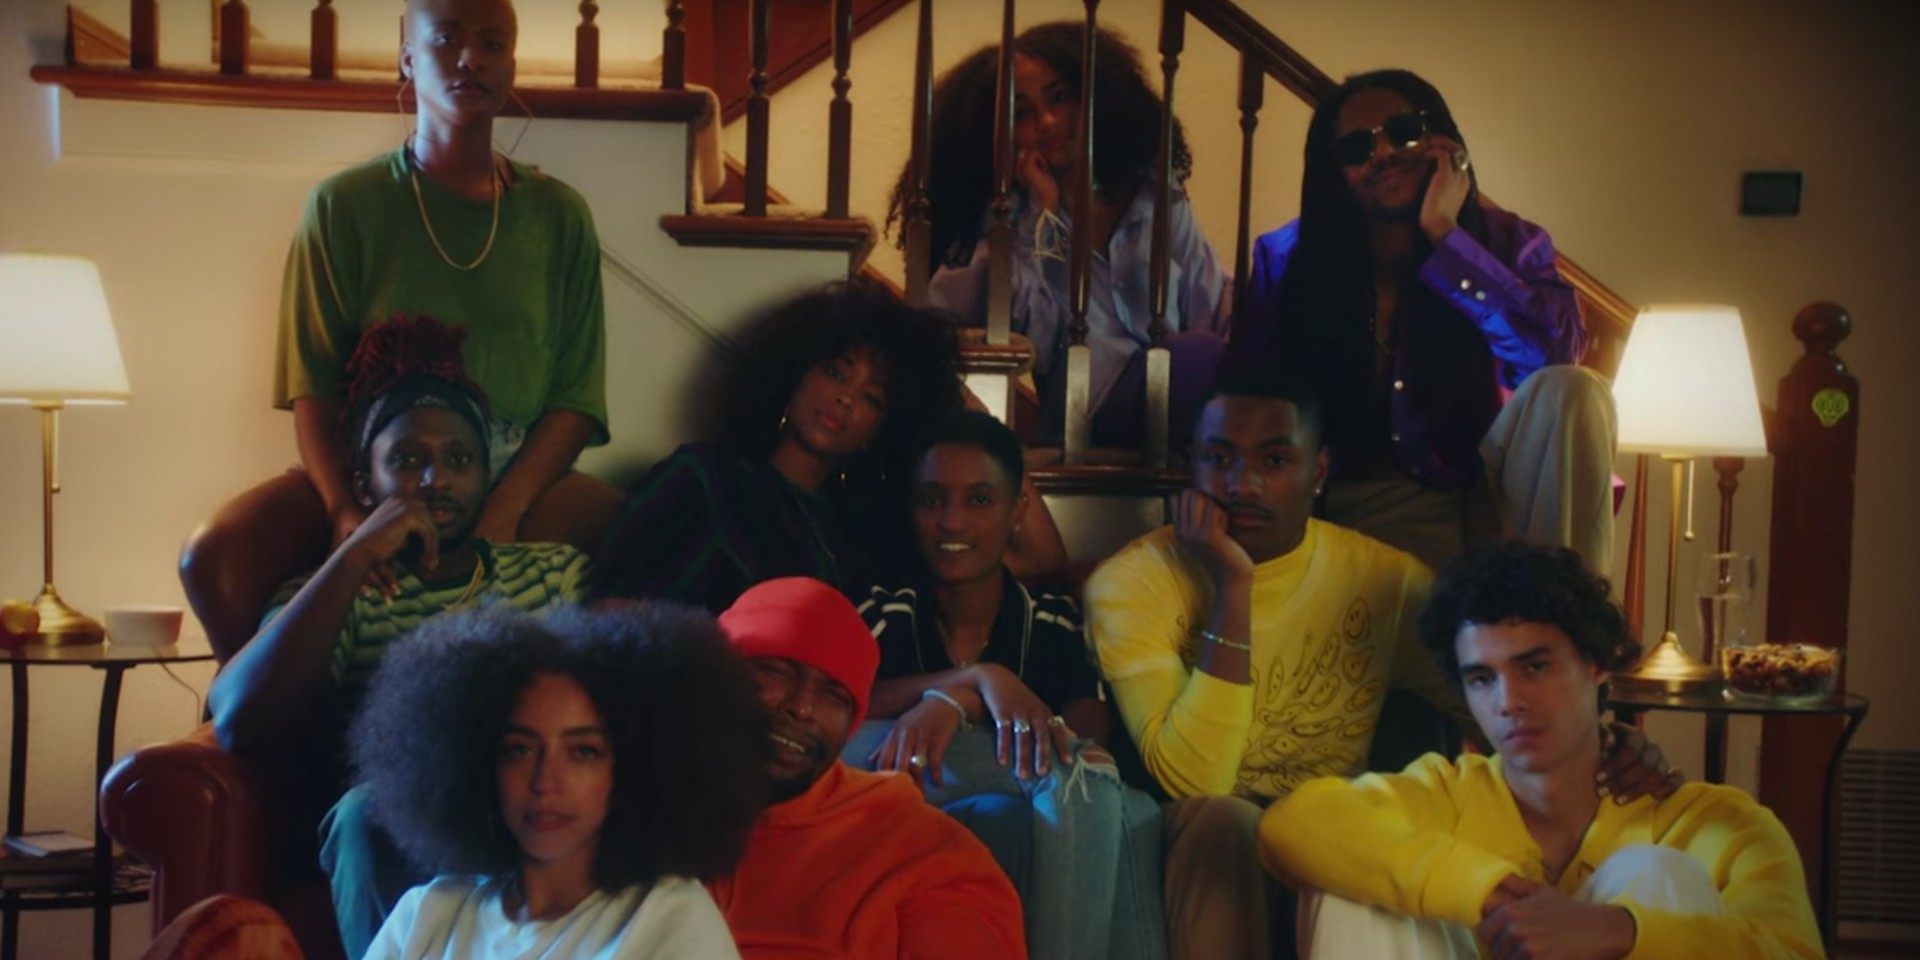 The Internet release vibrant music video for new song 'Come Over', directed by Syd –watch